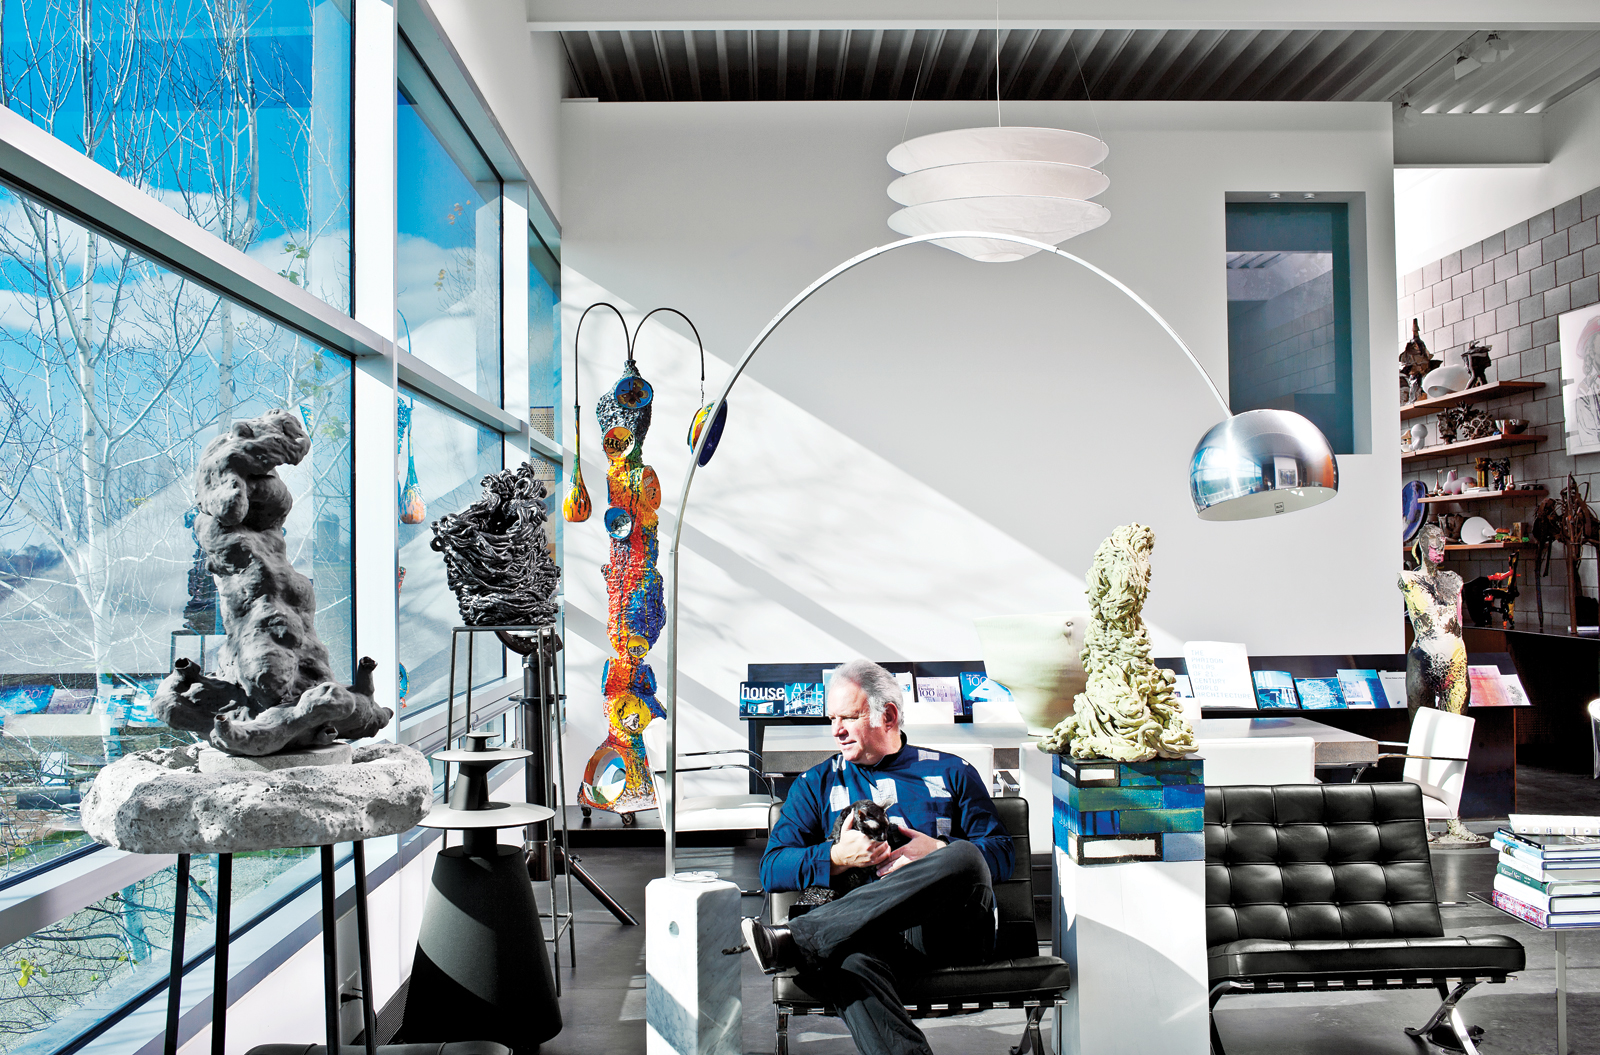 Resident in living room with sculptures and black furniture